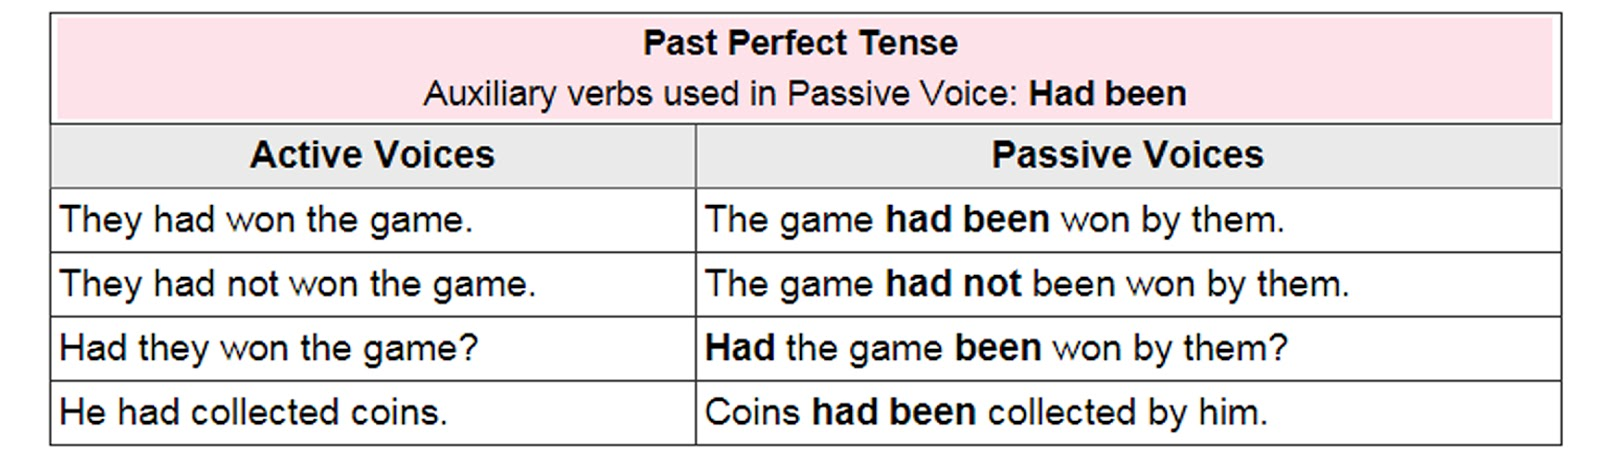 Active and Passive Voice Rules – Past perfect tense